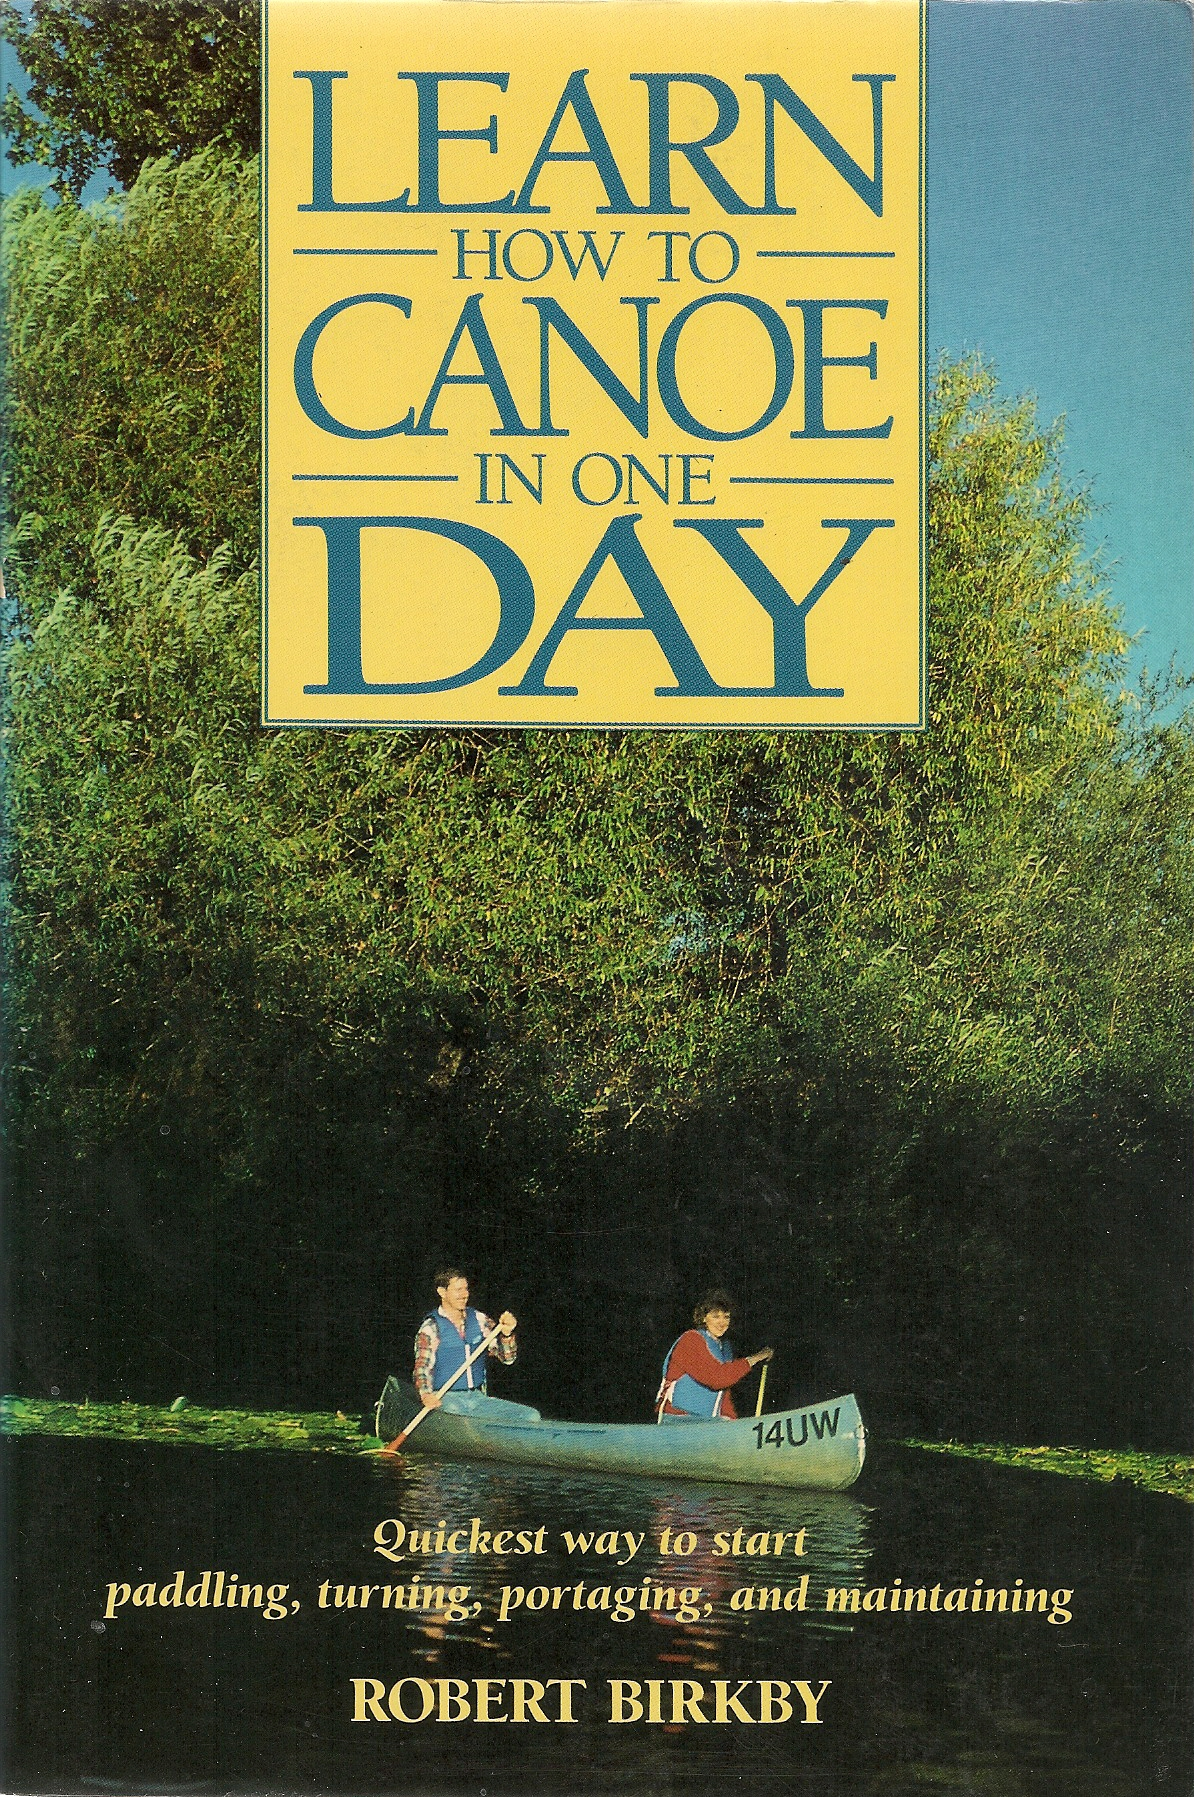 13.Learn How to Canoe.jpg